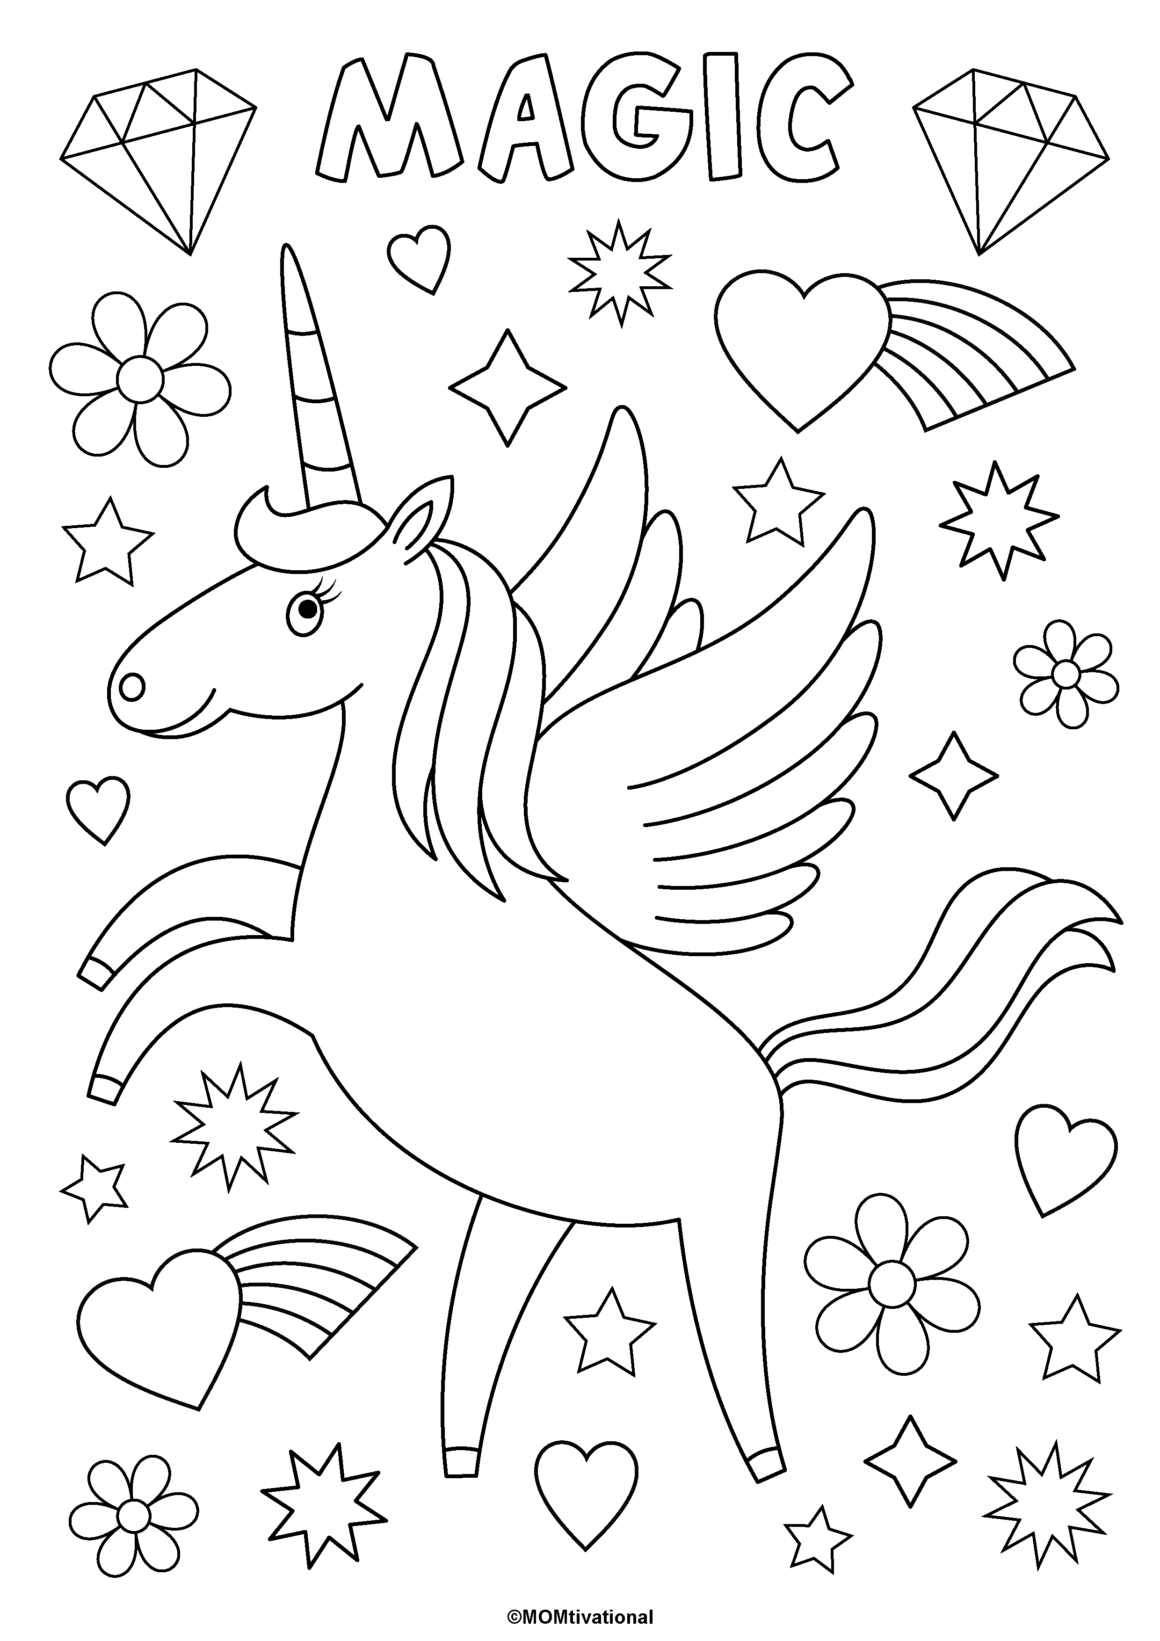 Fun And Free Unicorn Coloring Pages For Kids Momtivational In 2020 Unicorn Coloring Pages Free Kids Coloring Pages Coloring Pages